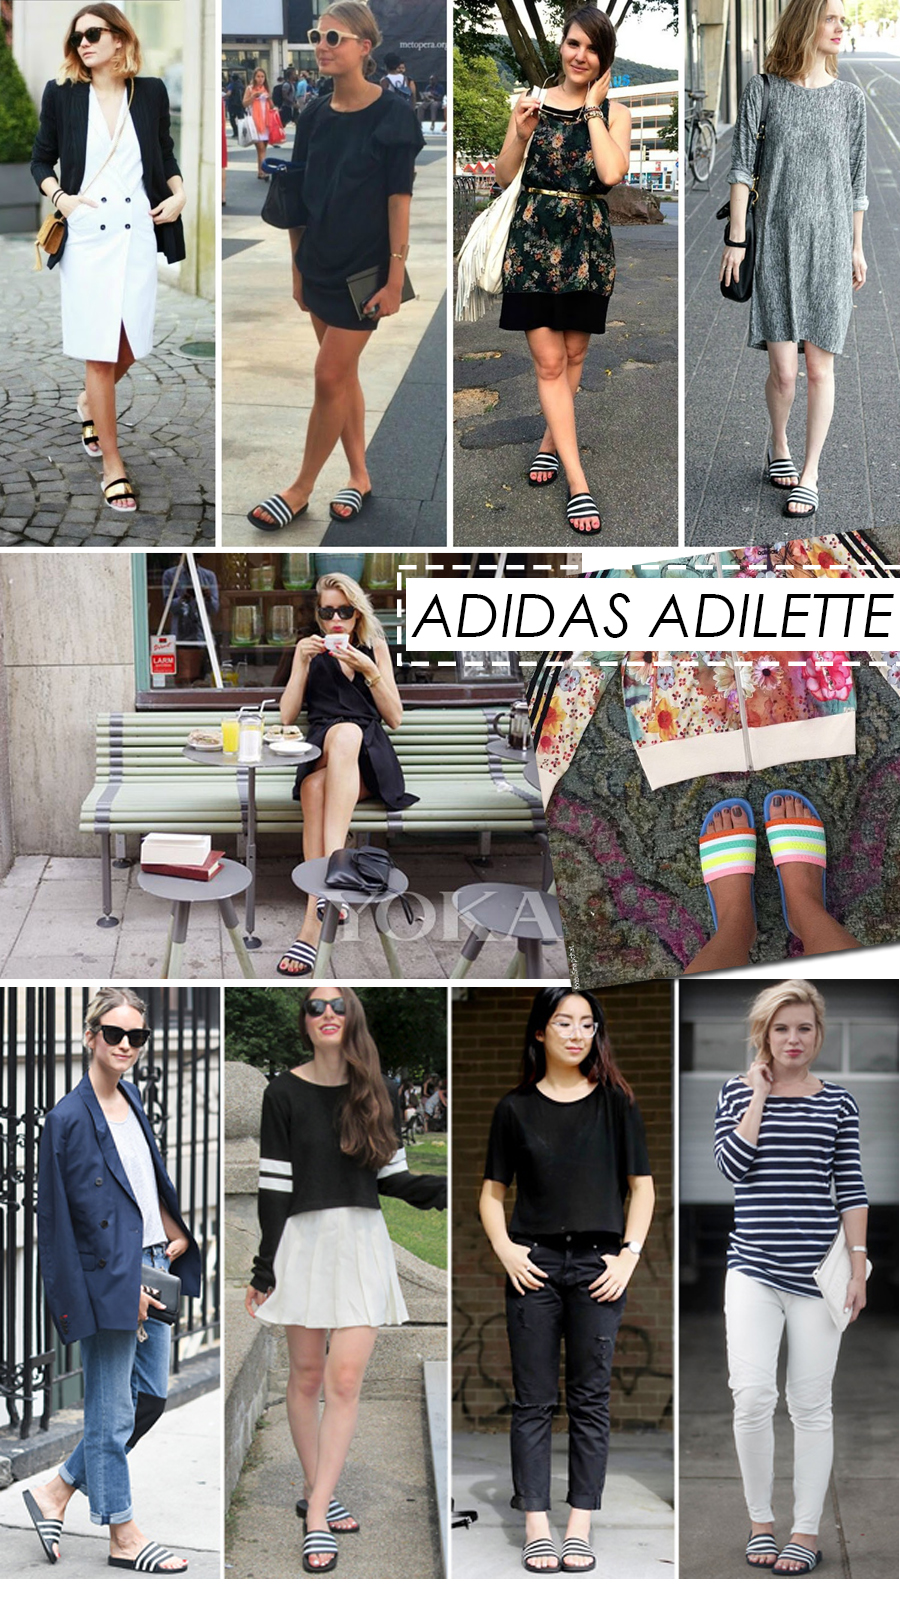 como-sar-adidas-adilette-blog-pink-woman-fashion